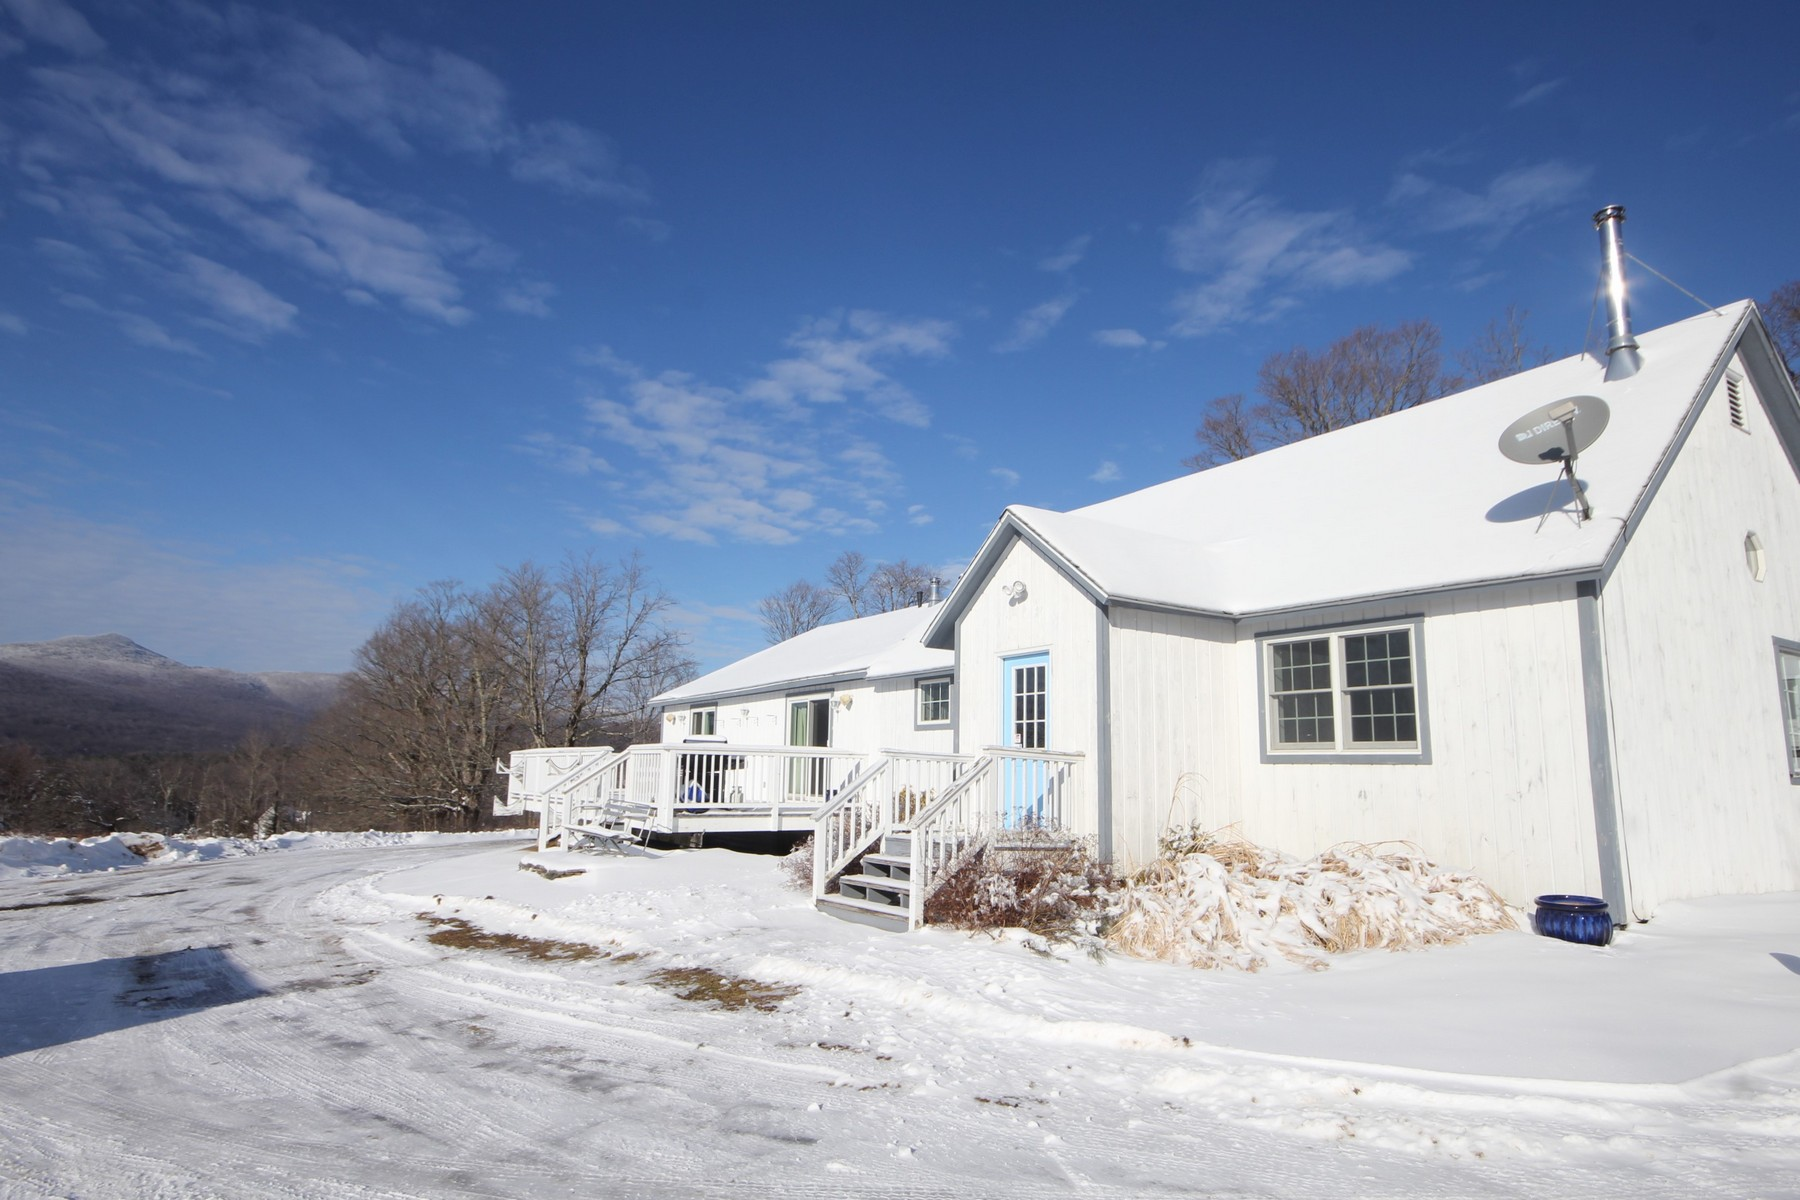 Single Family Homes for Sale at More Than Meets the Eye 210 Ray Hill Rd Wilmington, Vermont 05363 United States